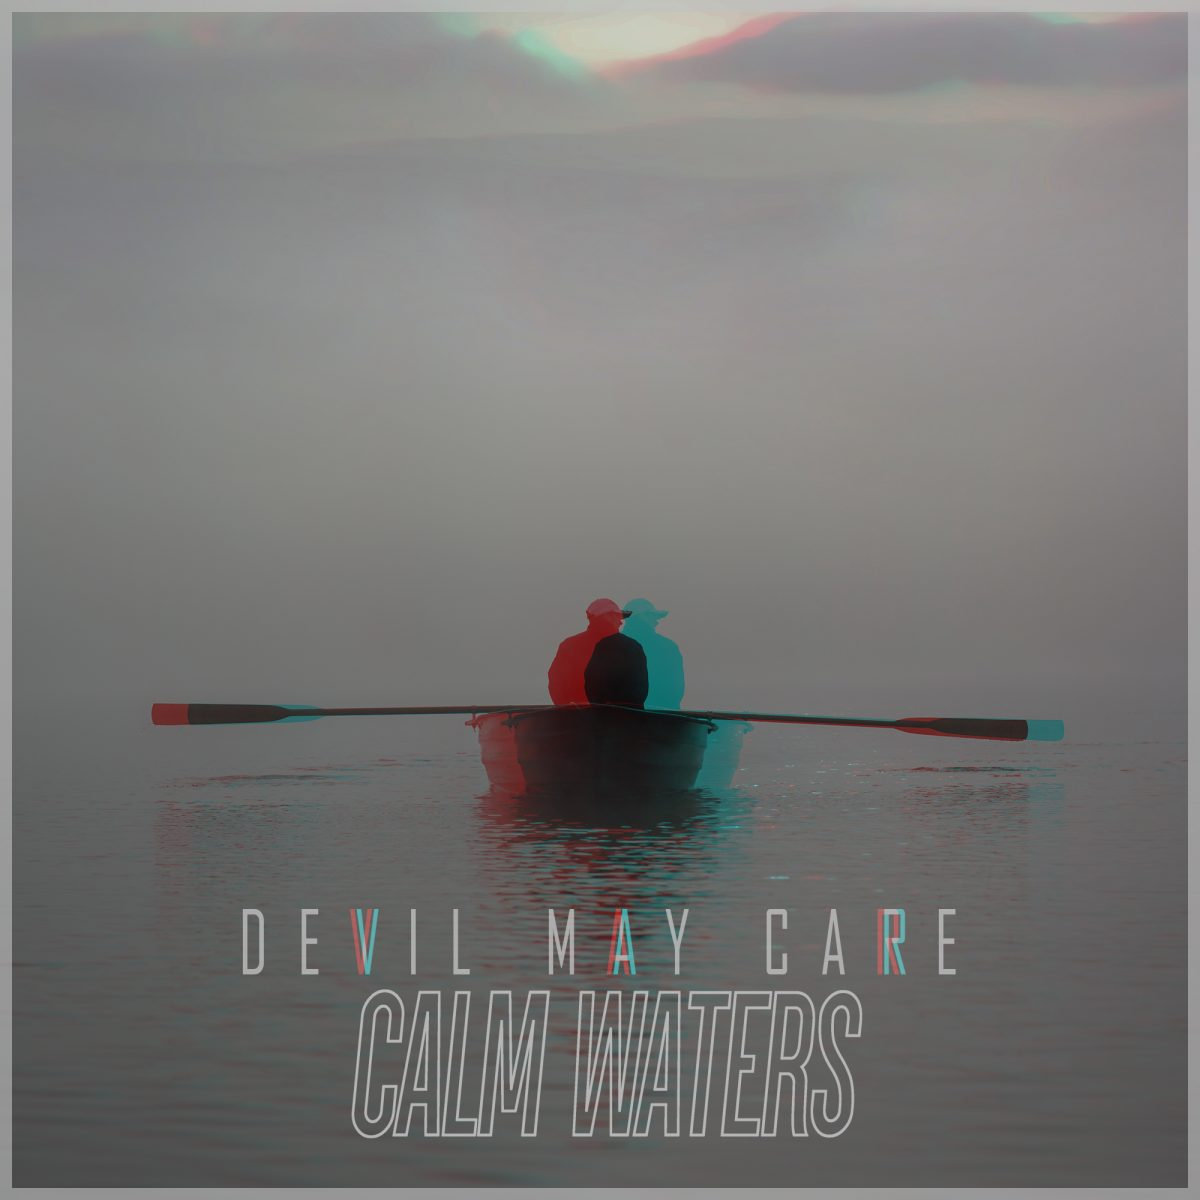 devil-may-care-calm-waters-emotionale-neue-single